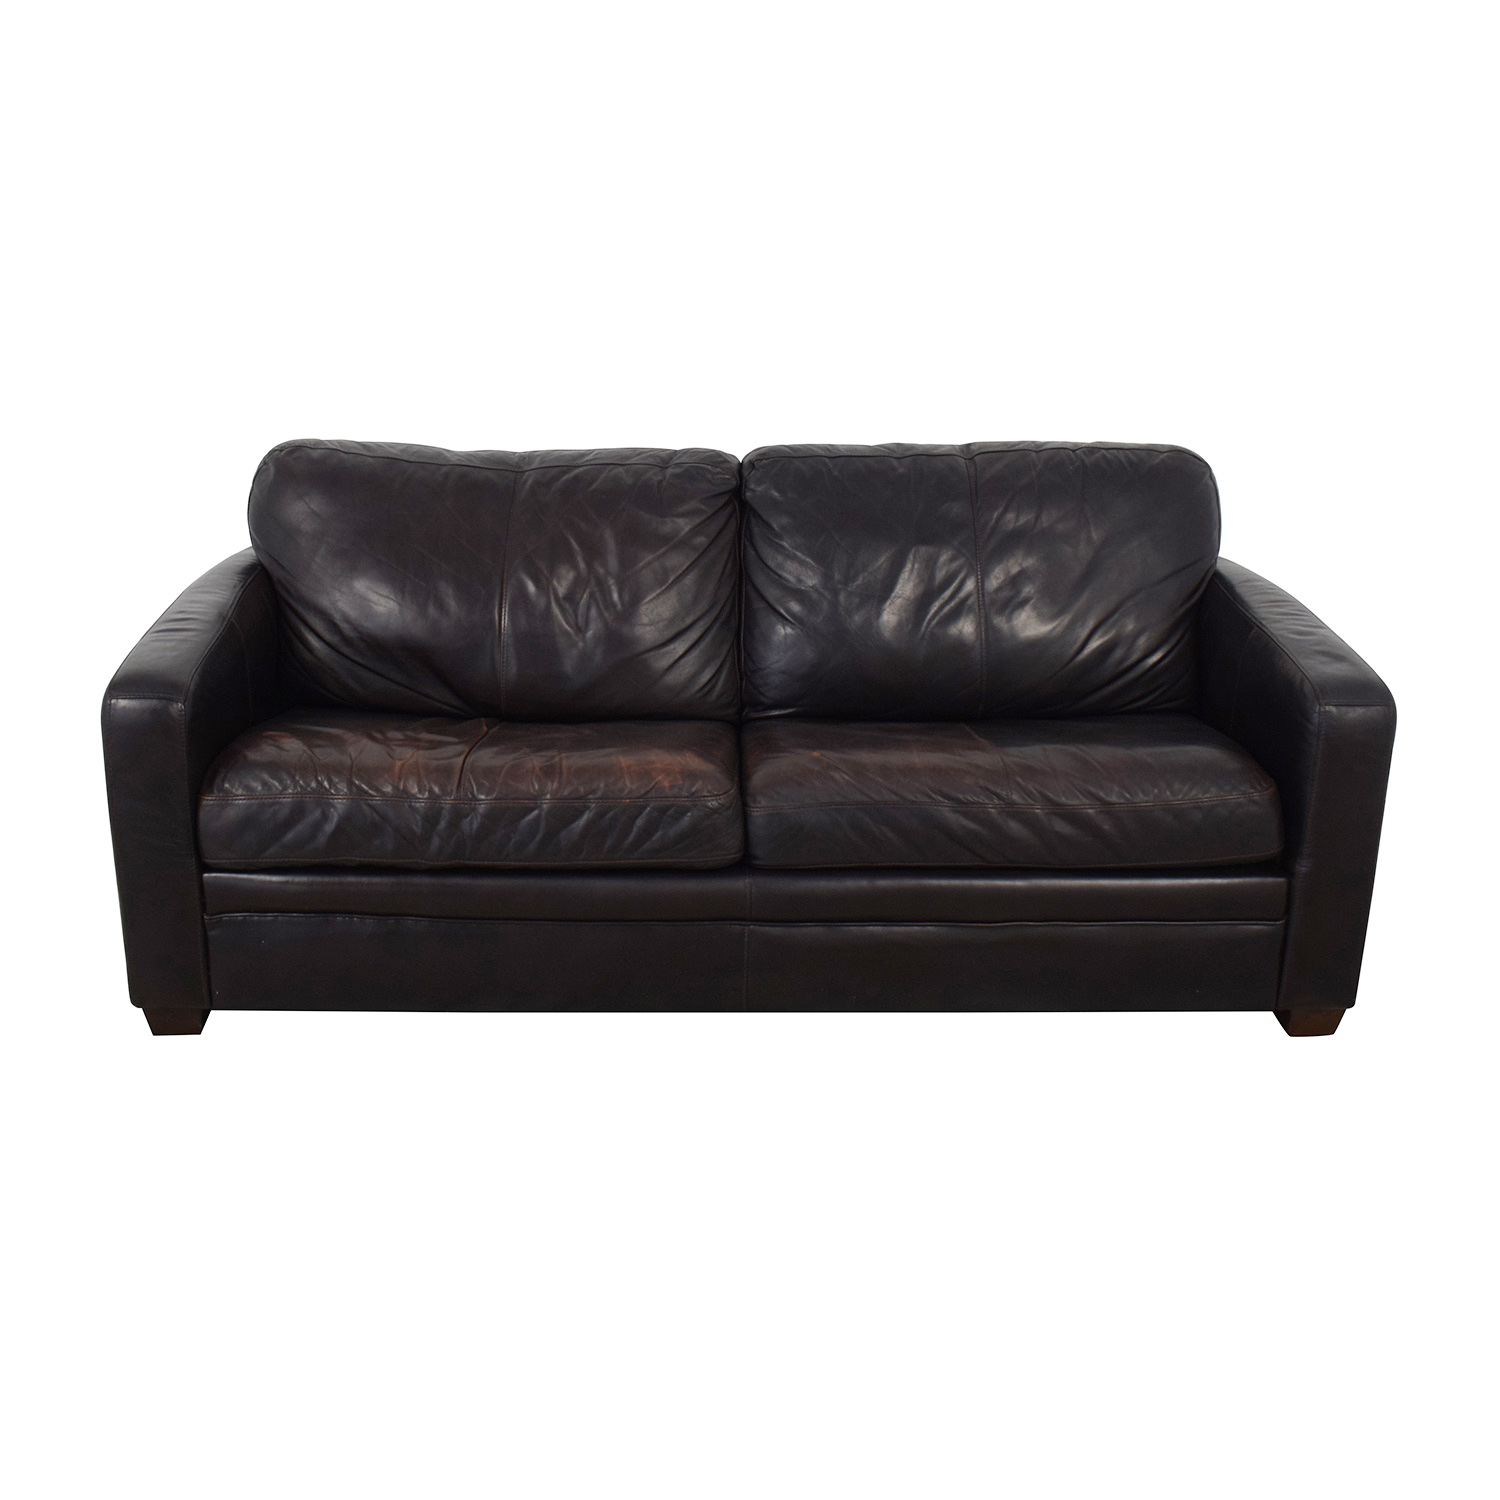 buy  Modern Full Sofa Bed online